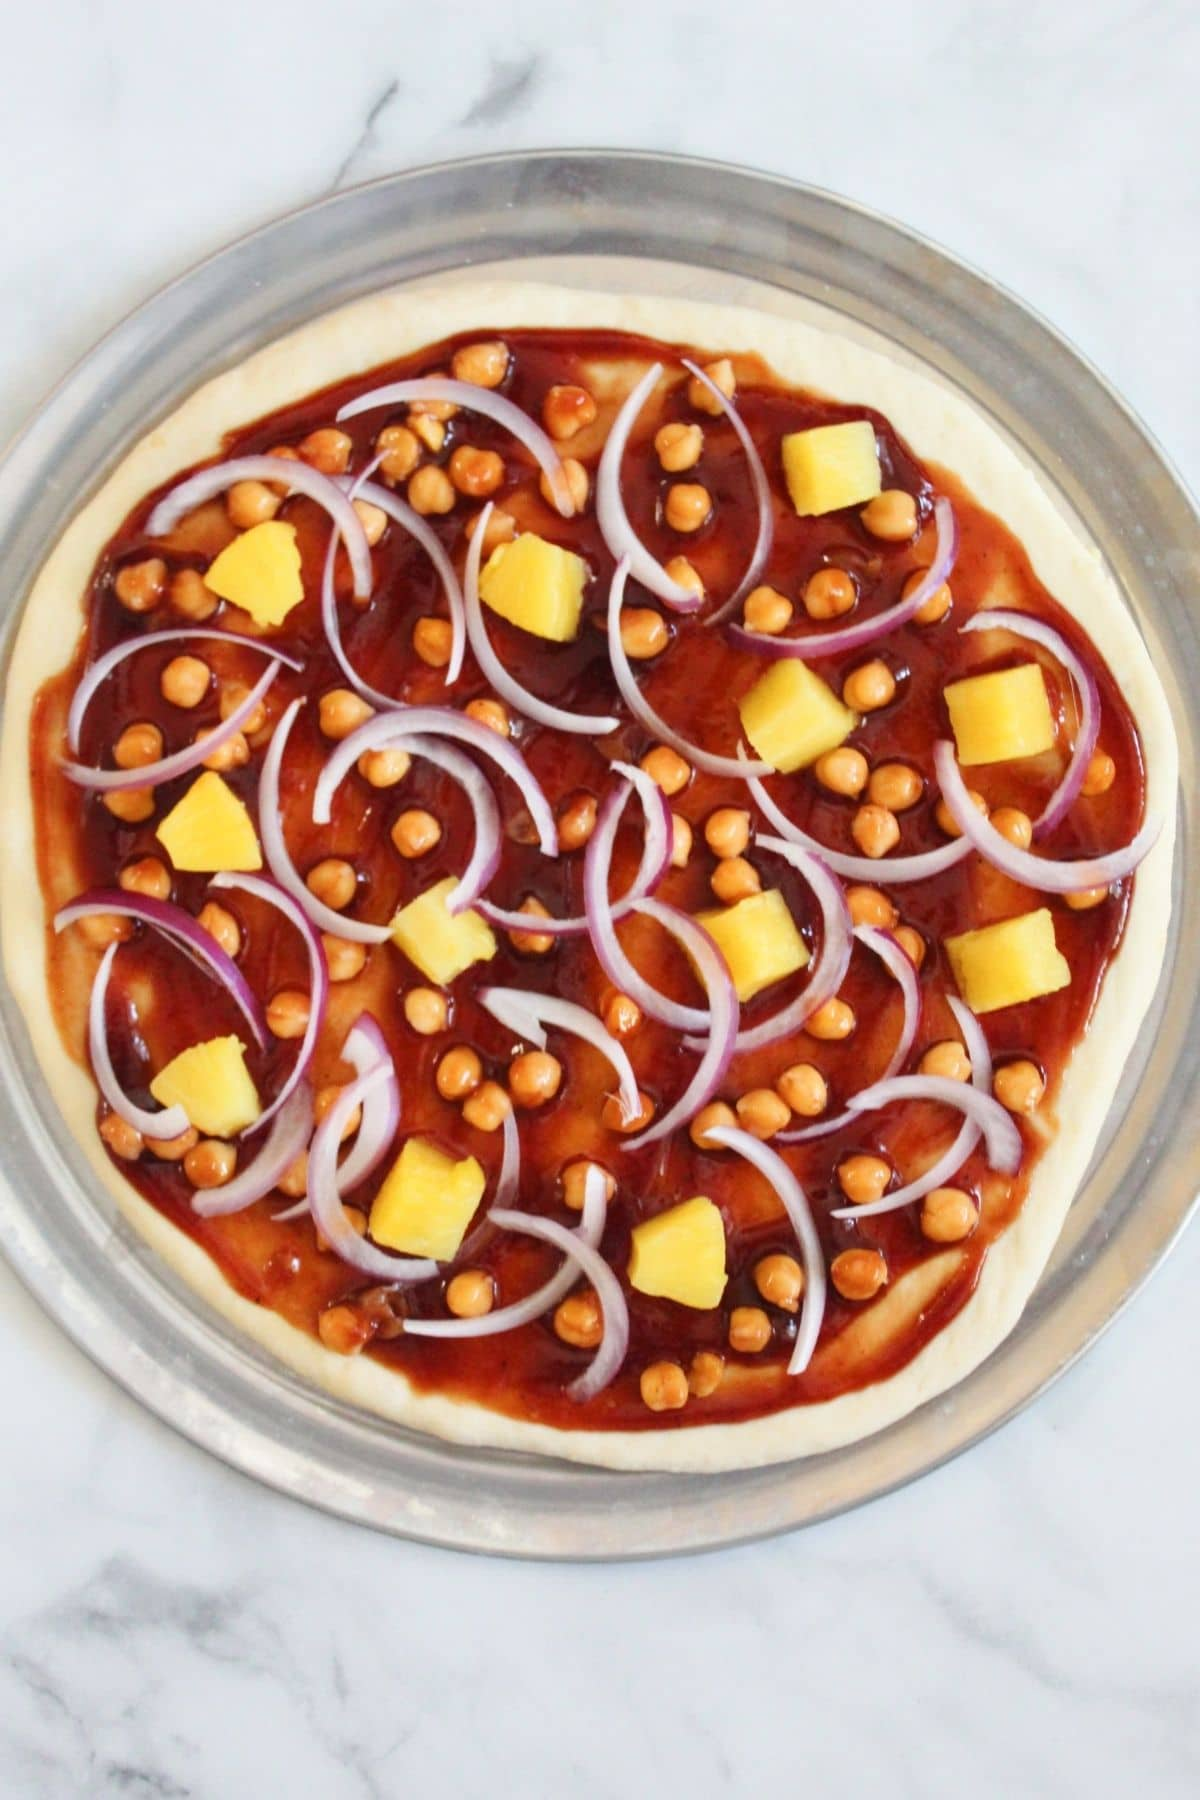 assembled pizza with bbq sauce, rolled out pizza, dough, chickpeas, pineapple, and red onions